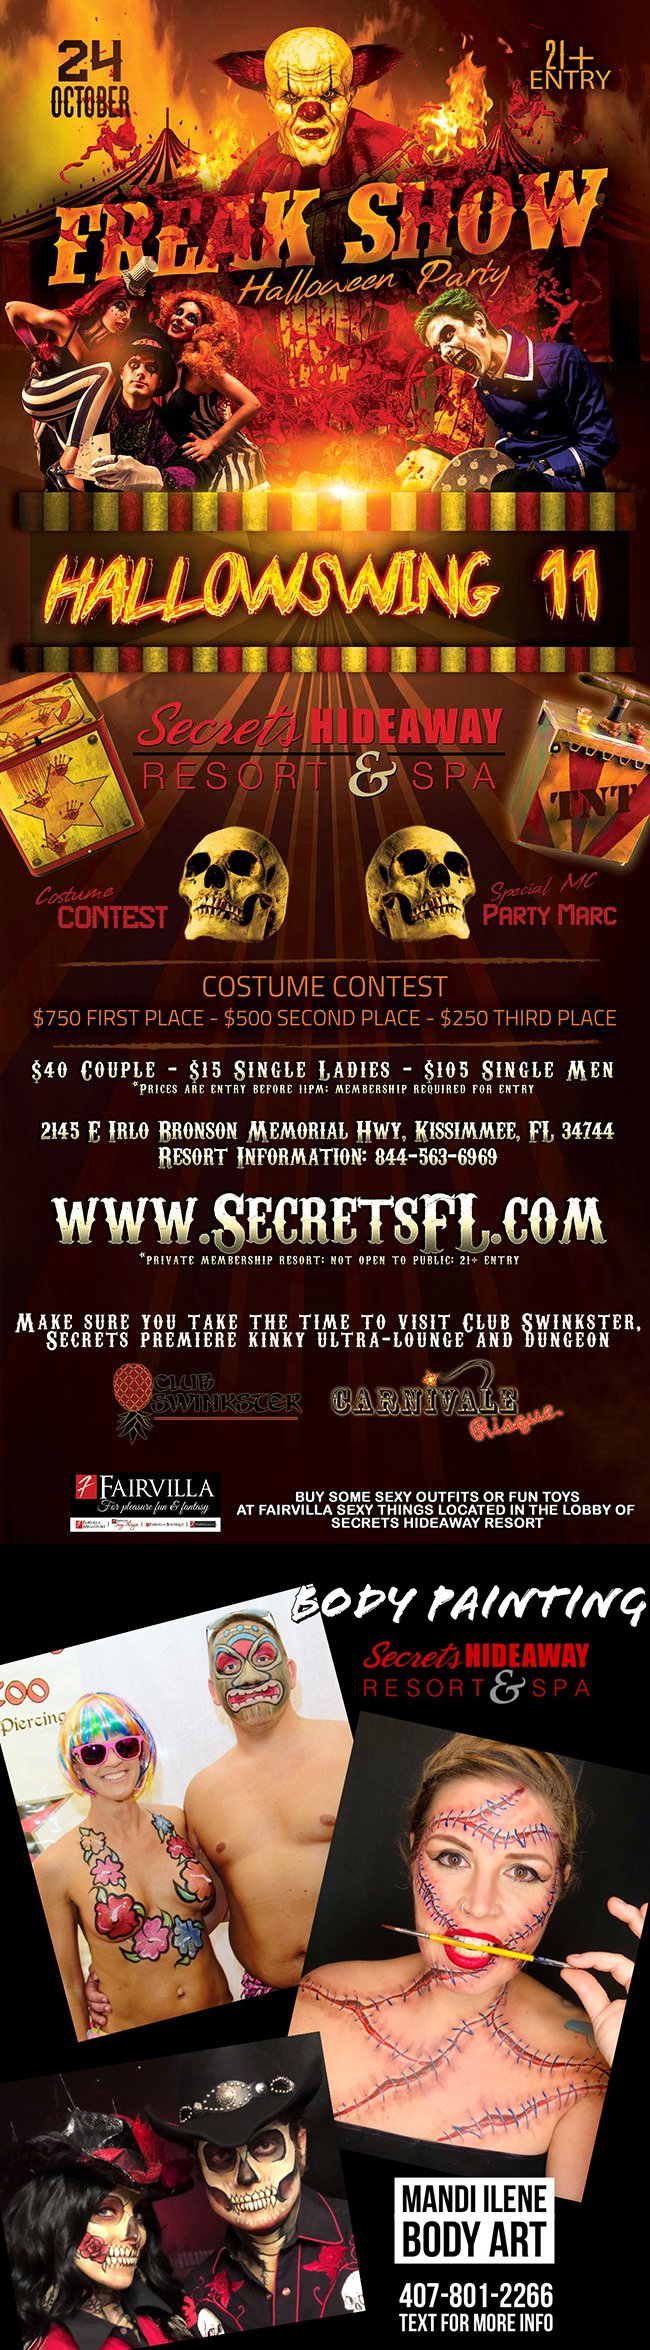 Events - Freak Show Hallowswing 11 Orlando, Florida Lifestyle and Swinger Parties